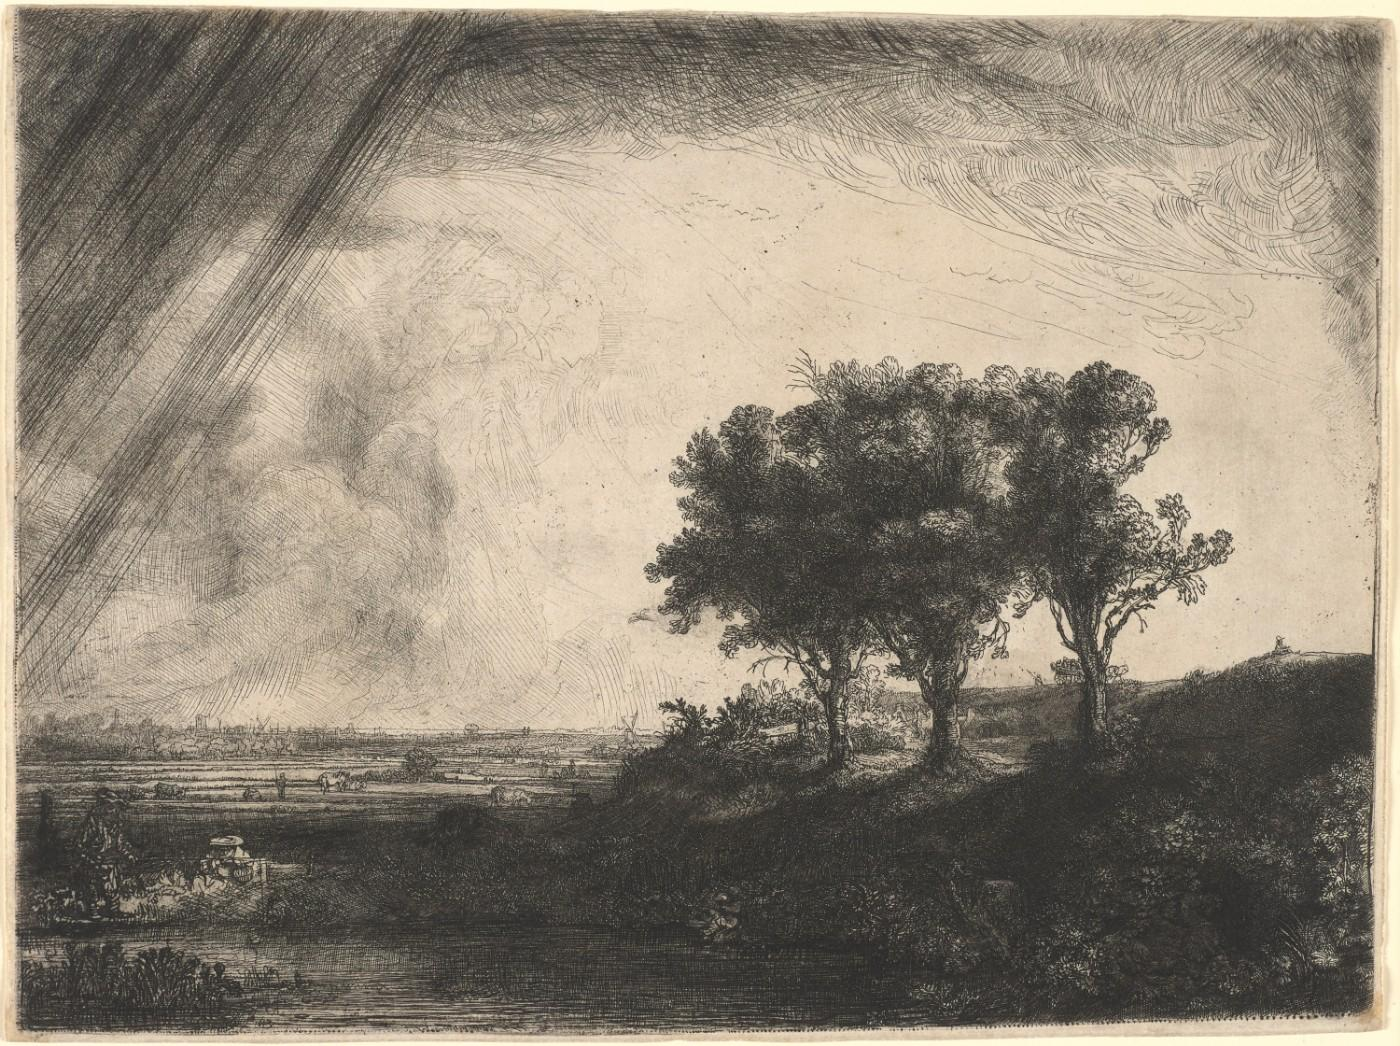 Rembrandt van Rijn (Dutch, 1606–1669), Landscape with Three Trees, 1643